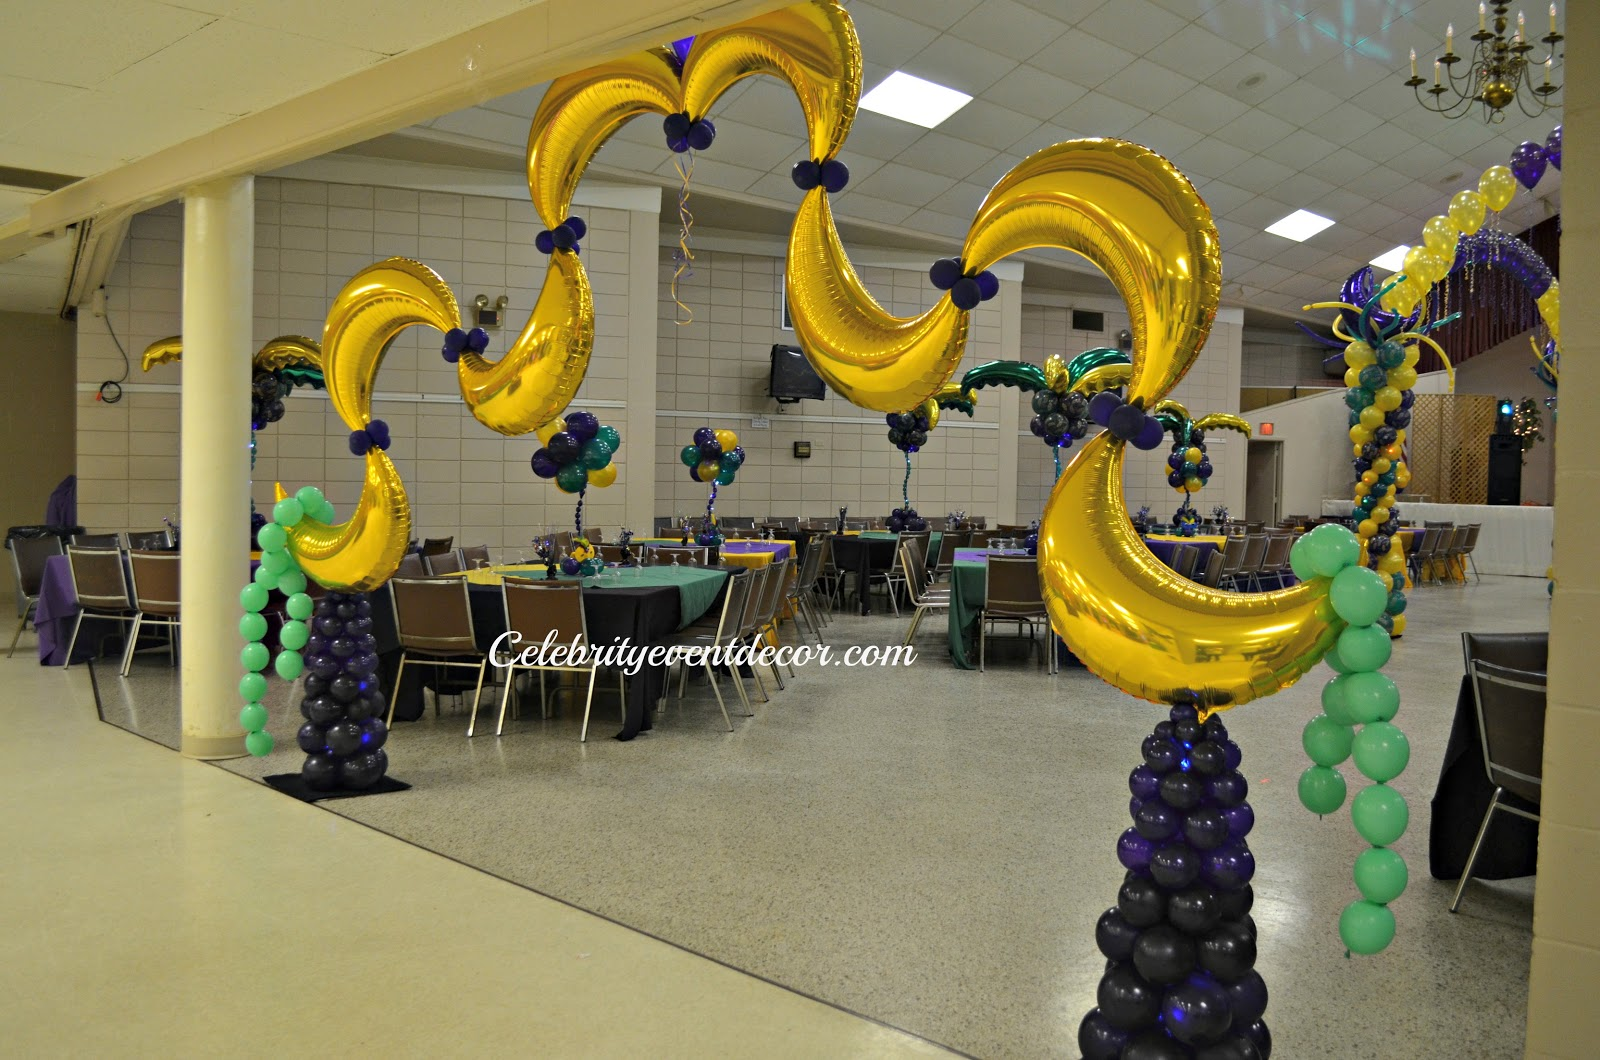 Celebrity Event Decor & Banquet Hall, LLC